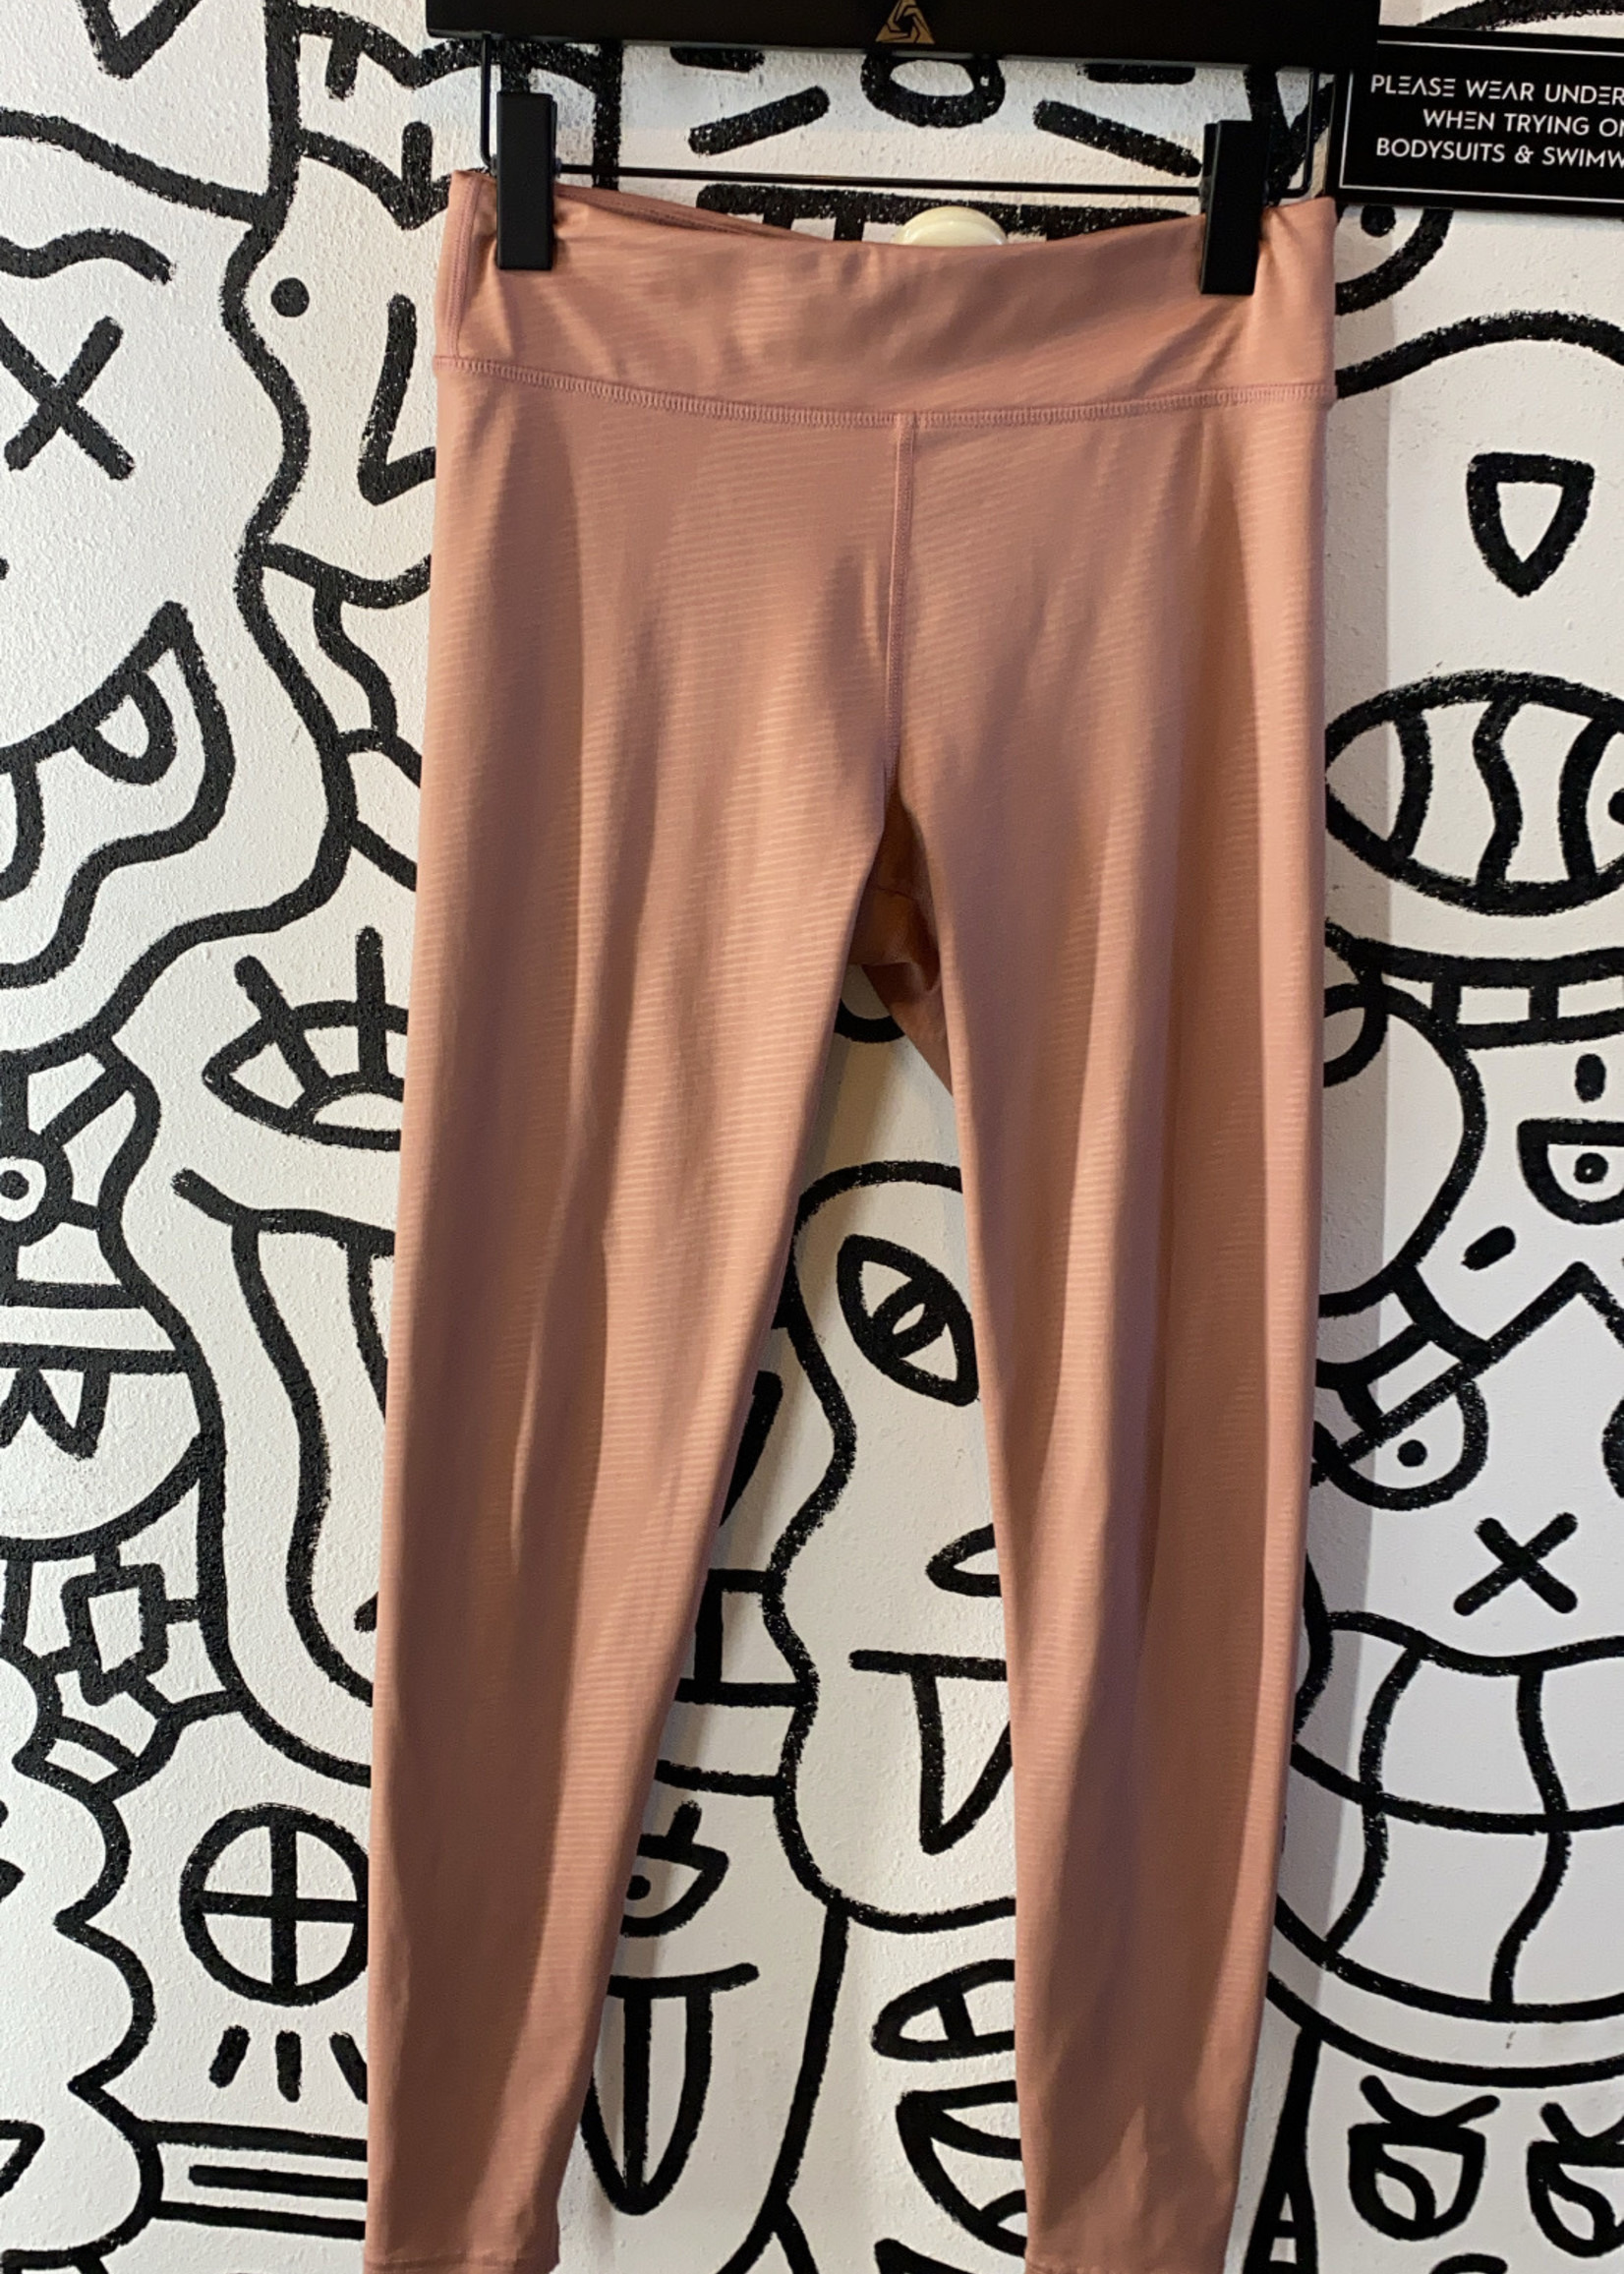 Free People movement light pink texture long athletic leggings S